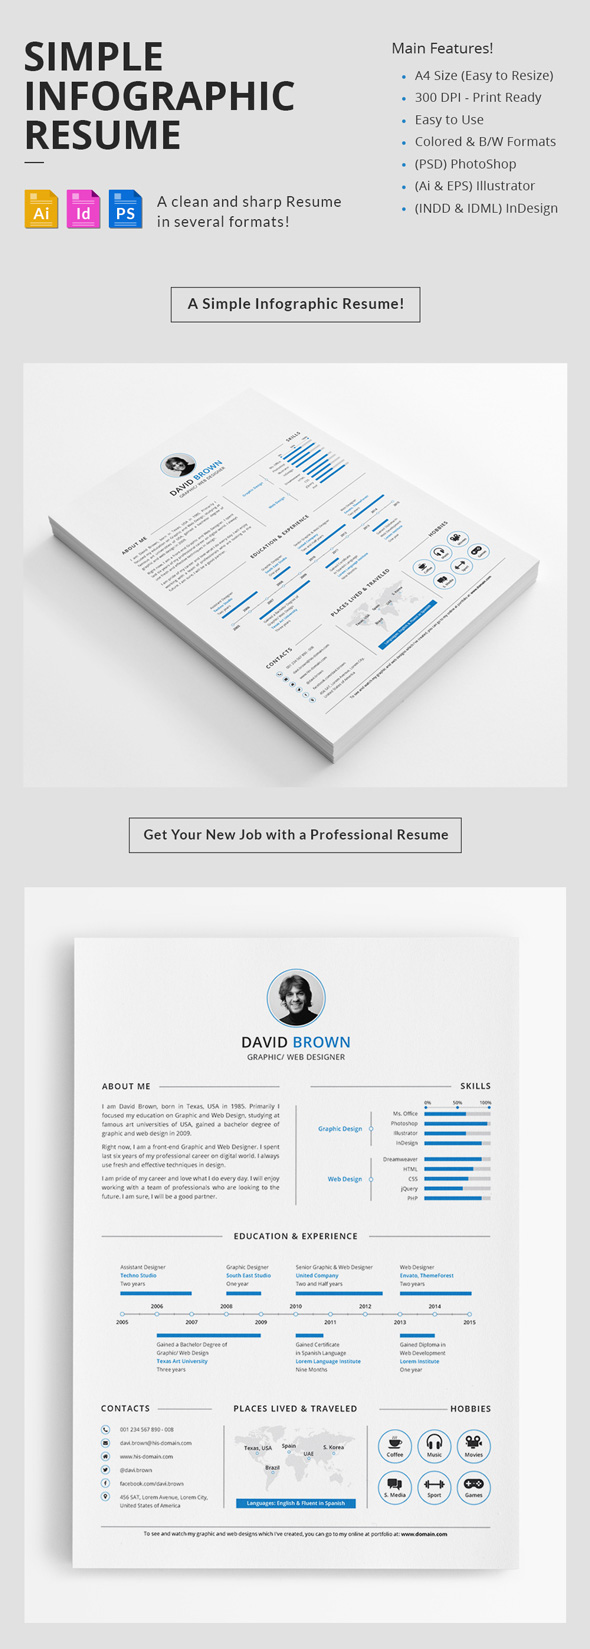 15 creative infographic resume templates minimal resume template design wajeb Image collections